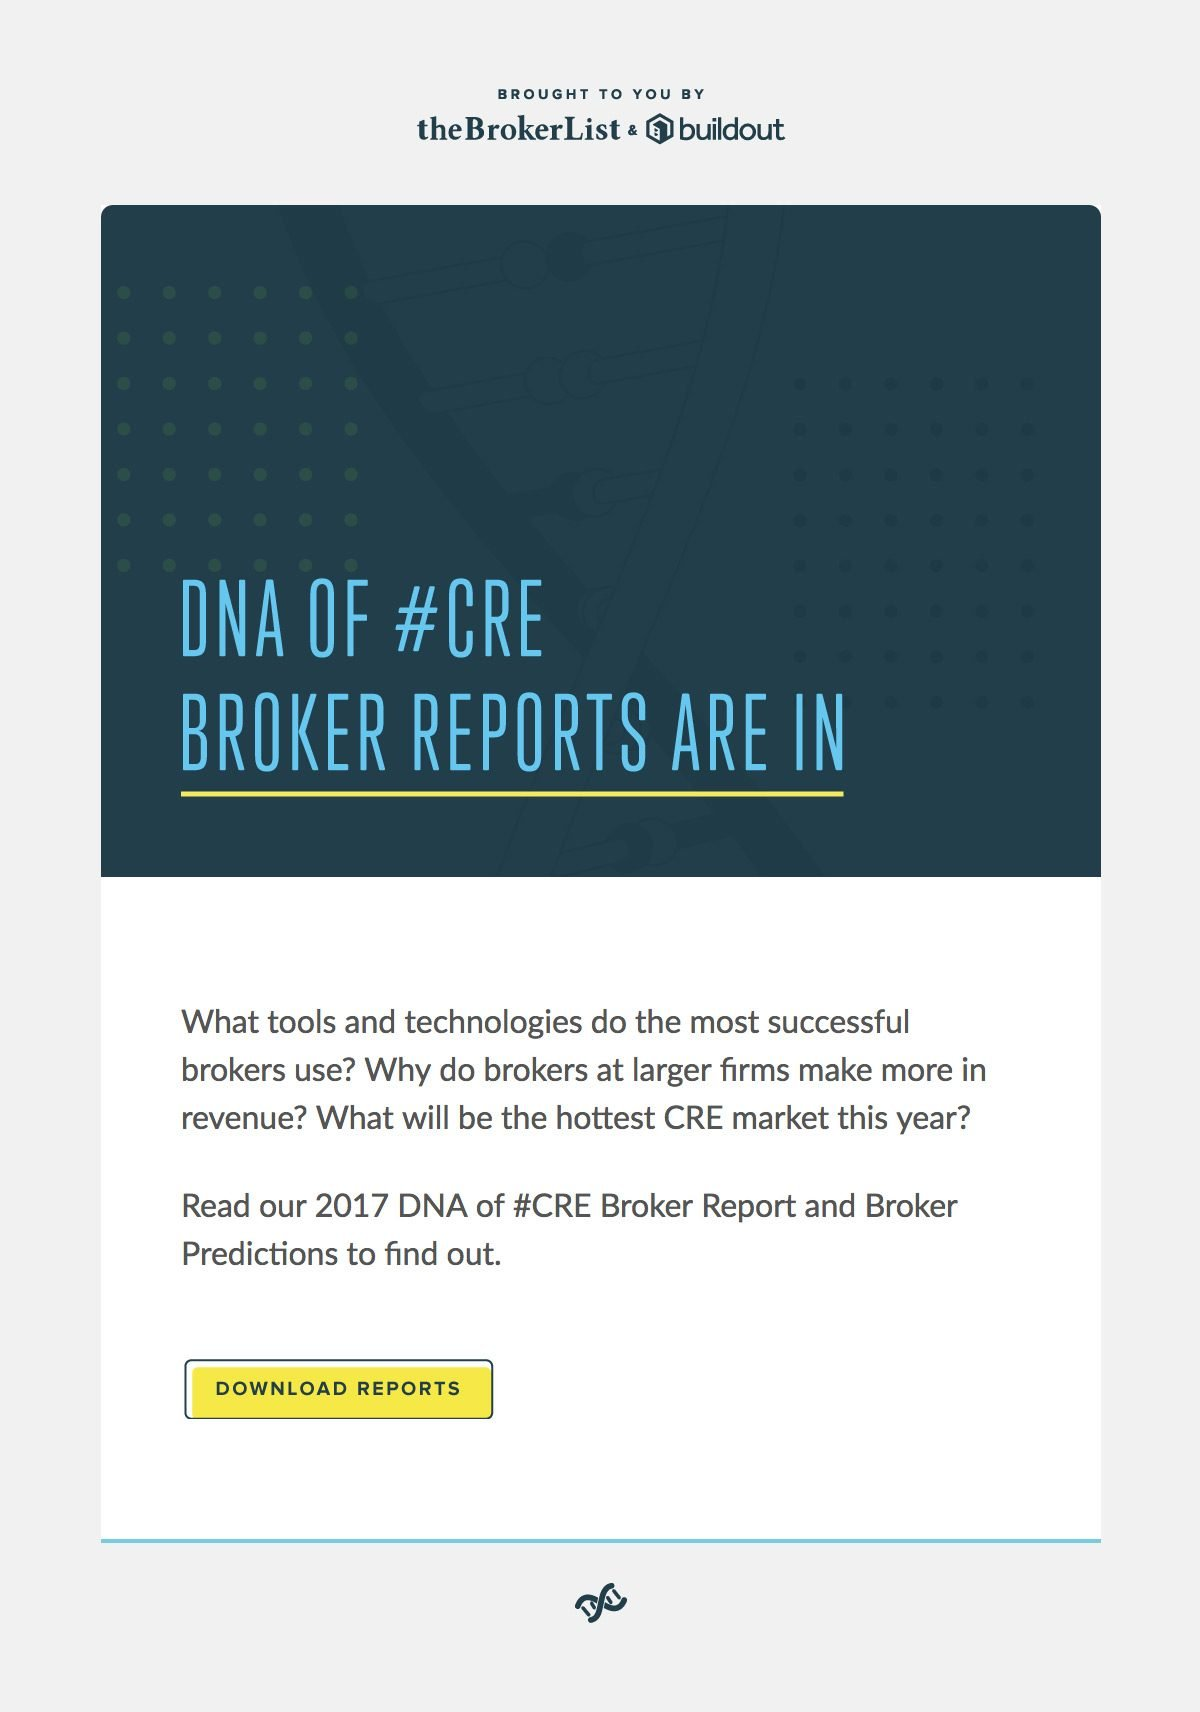 DNA of #CRE 2017 Reports are Live